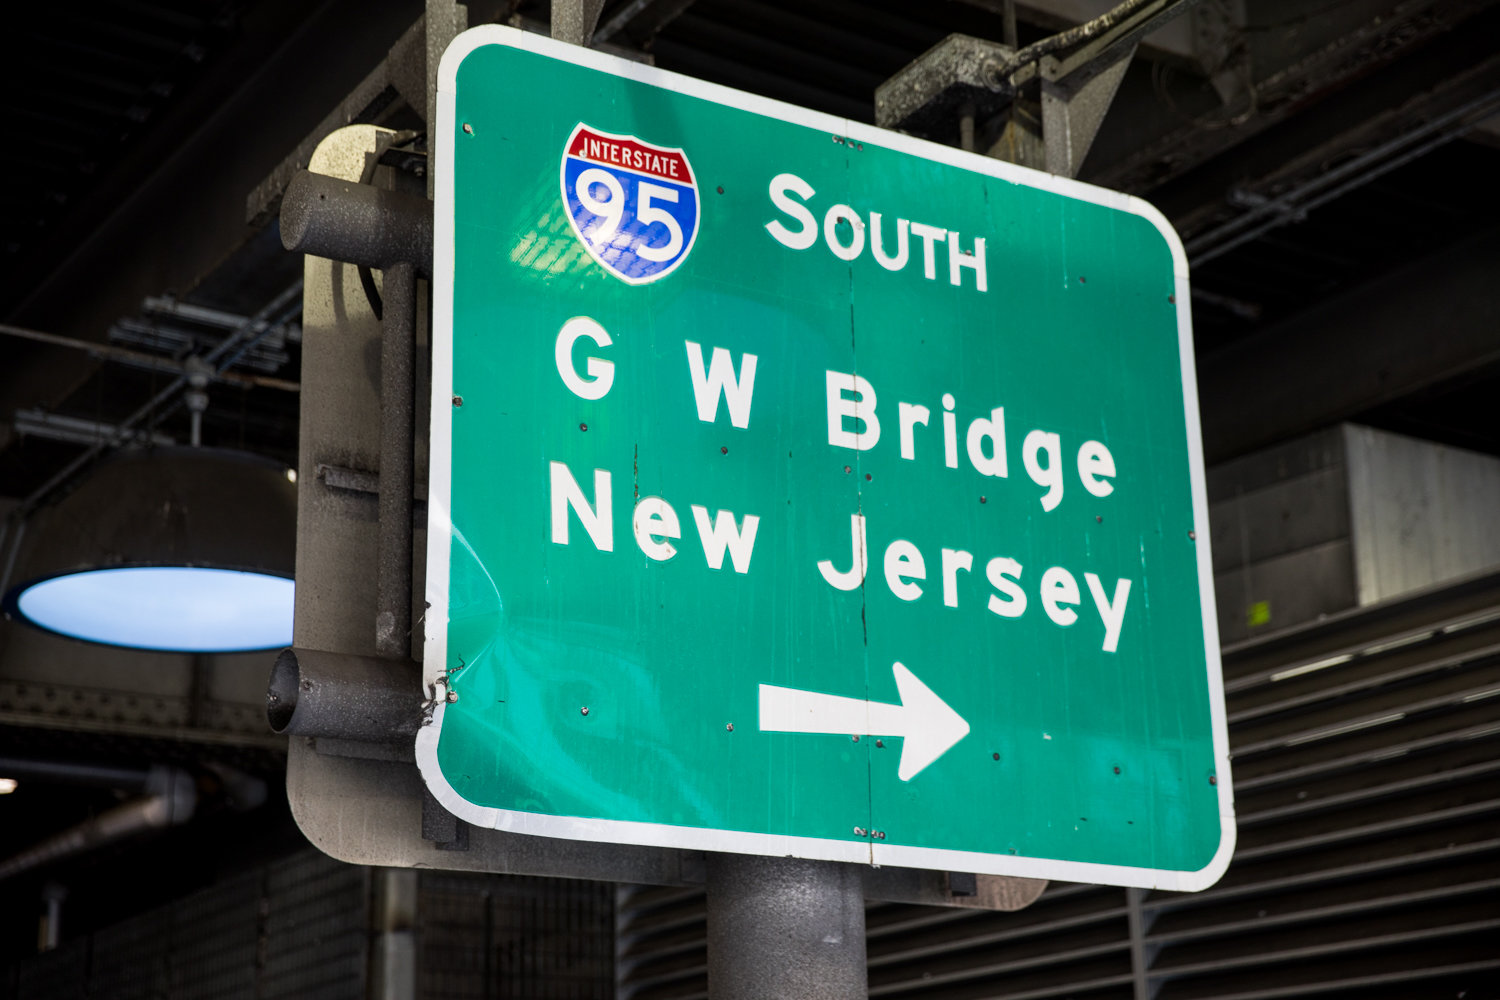 The George Washington Bridge has one of the highest tolls in the city, but a discount was afforded to those who carpooled. That is until the port authority eliminated the discount ahead of the move to cashless tolling.